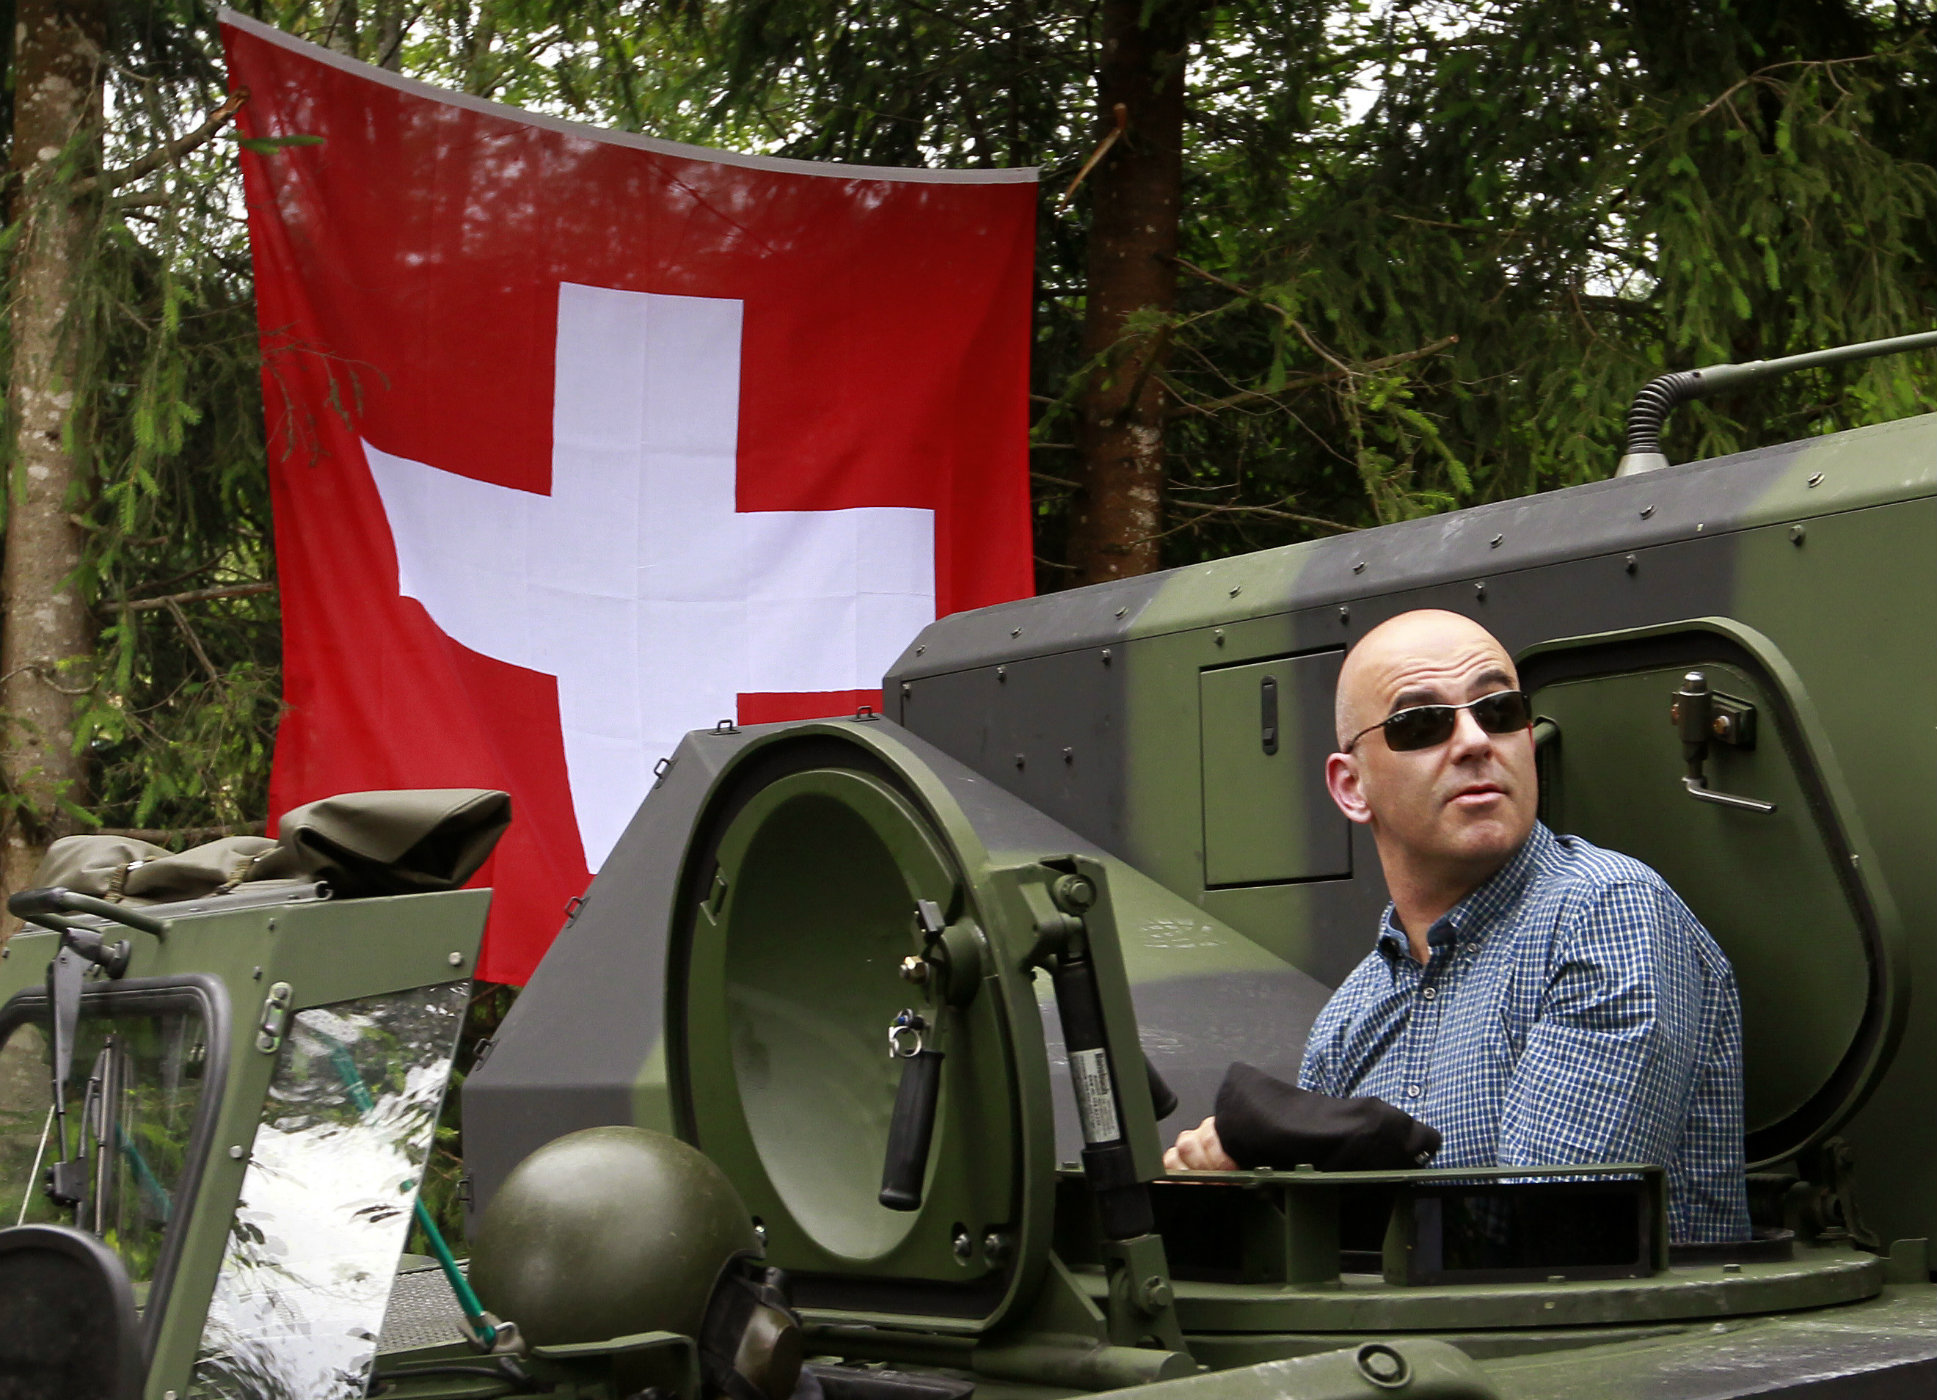 Swiss Interior Minister Alain Berset sits in a Swiss army tank in the village of Girenbad July 4, 2013. The members of the Swiss Federal Council are on a two-day visit in the canton of Zurich. REUTERS/Arnd Wiegmann